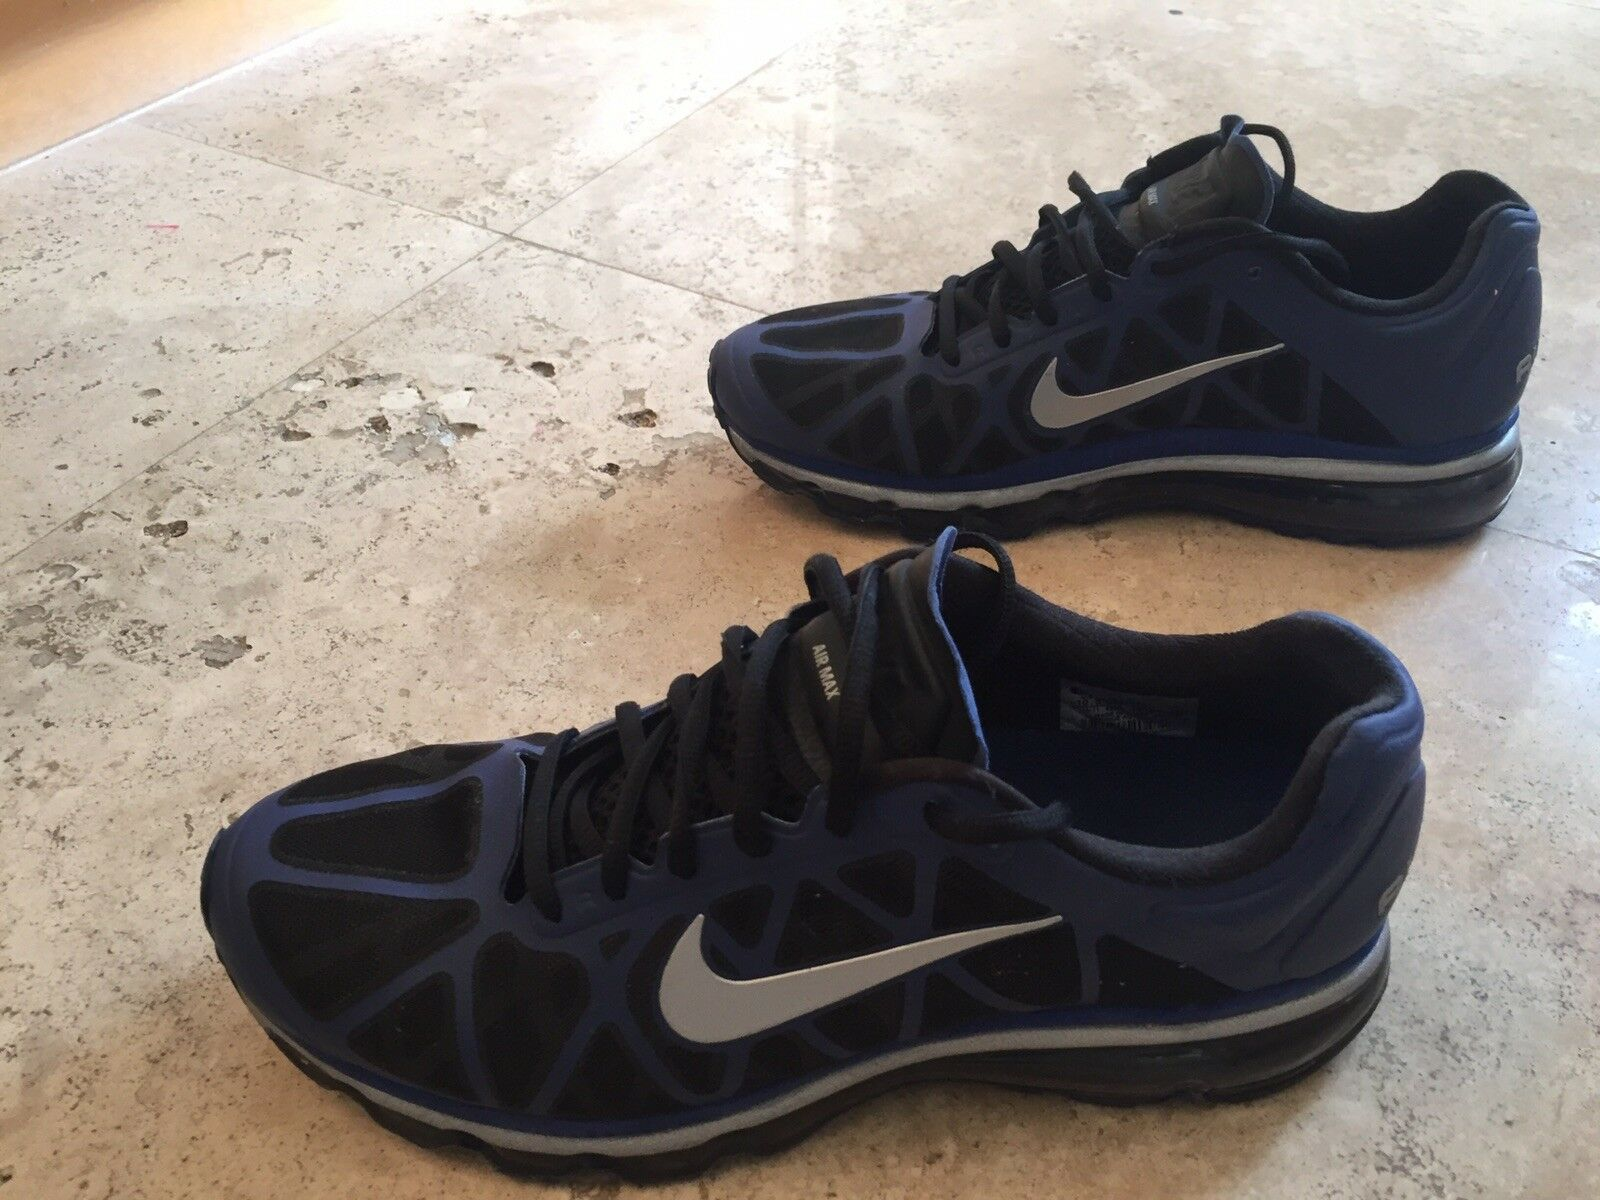 Nike Air Max + Running shoes Size 10.5 bluee Black Silver 429889-400